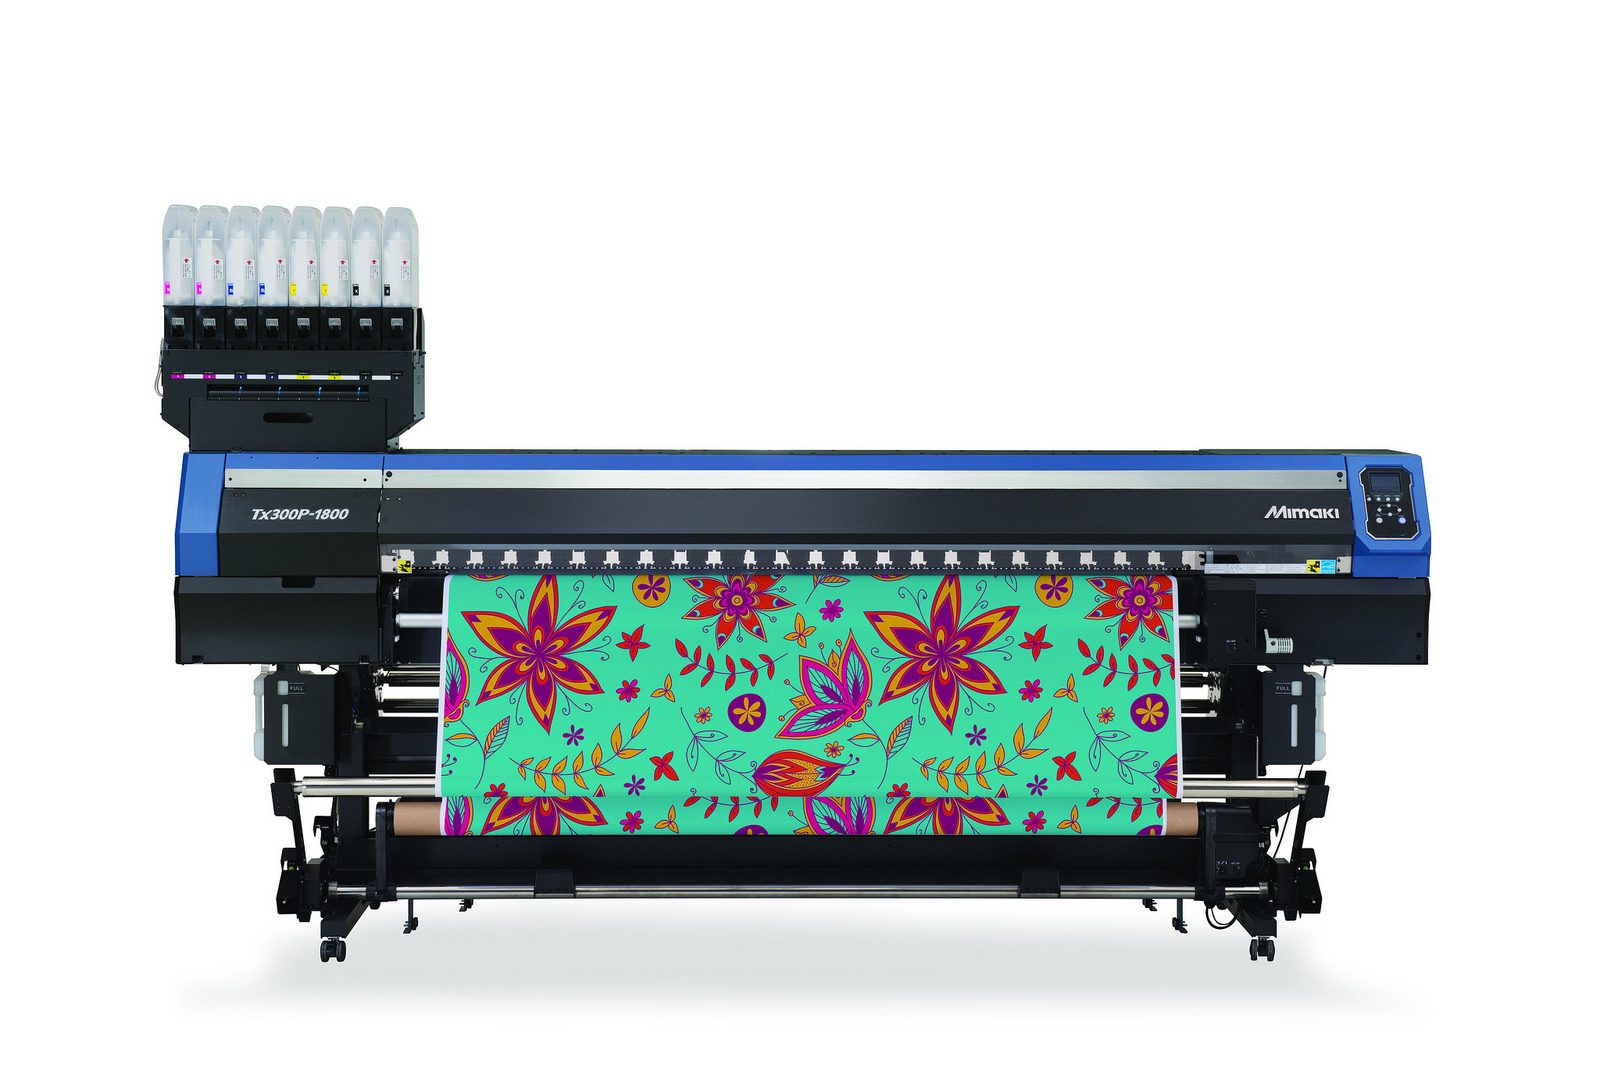 The Mimaki Tx300P-1800 high quality, versatile, direct-to-textile printer.